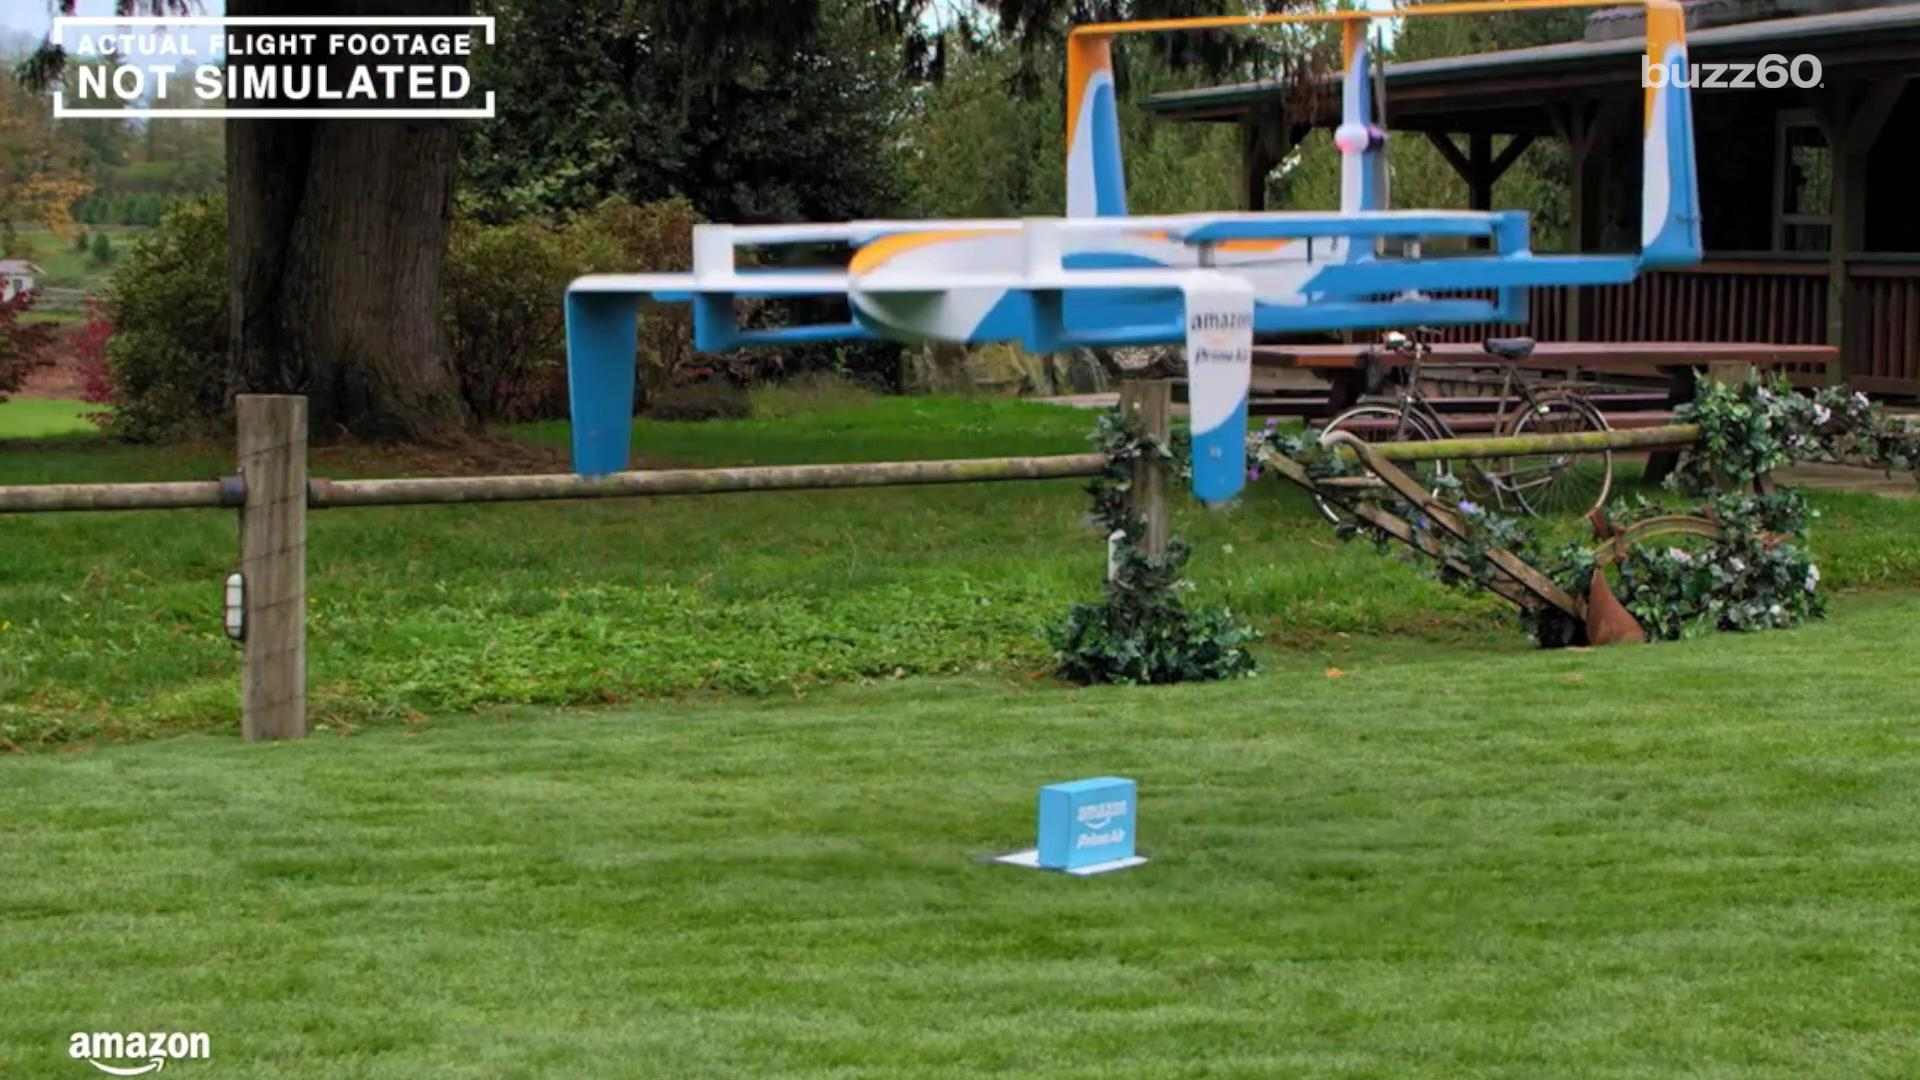 Amazon releases promo for its drone delivery service